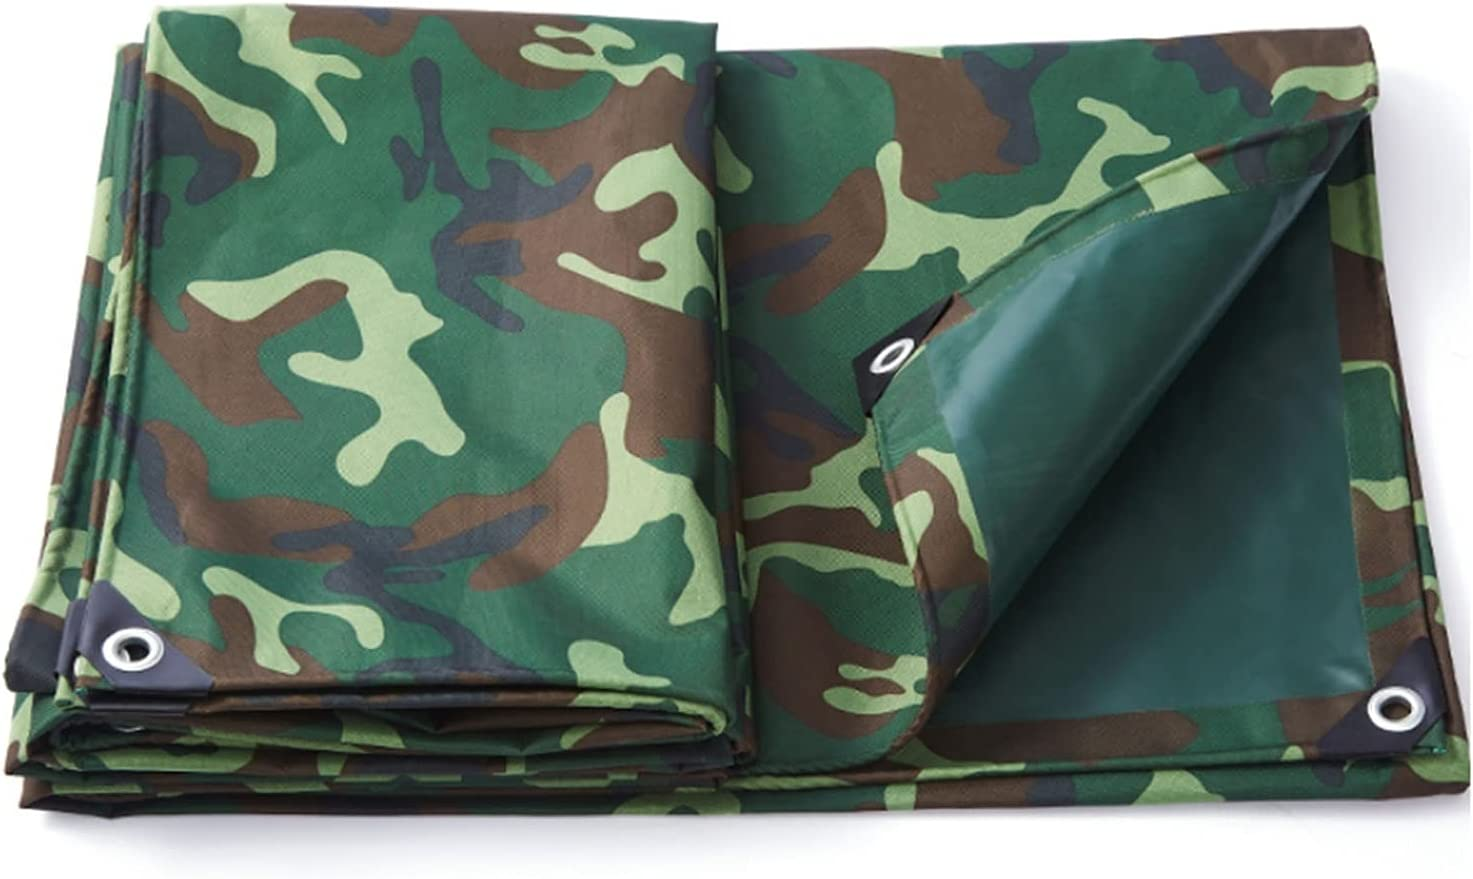 AWSAD Thicken Camouflage Limited price sale Tarpaulin Wear-Resistant Protection Free shipping anywhere in the nation Sun